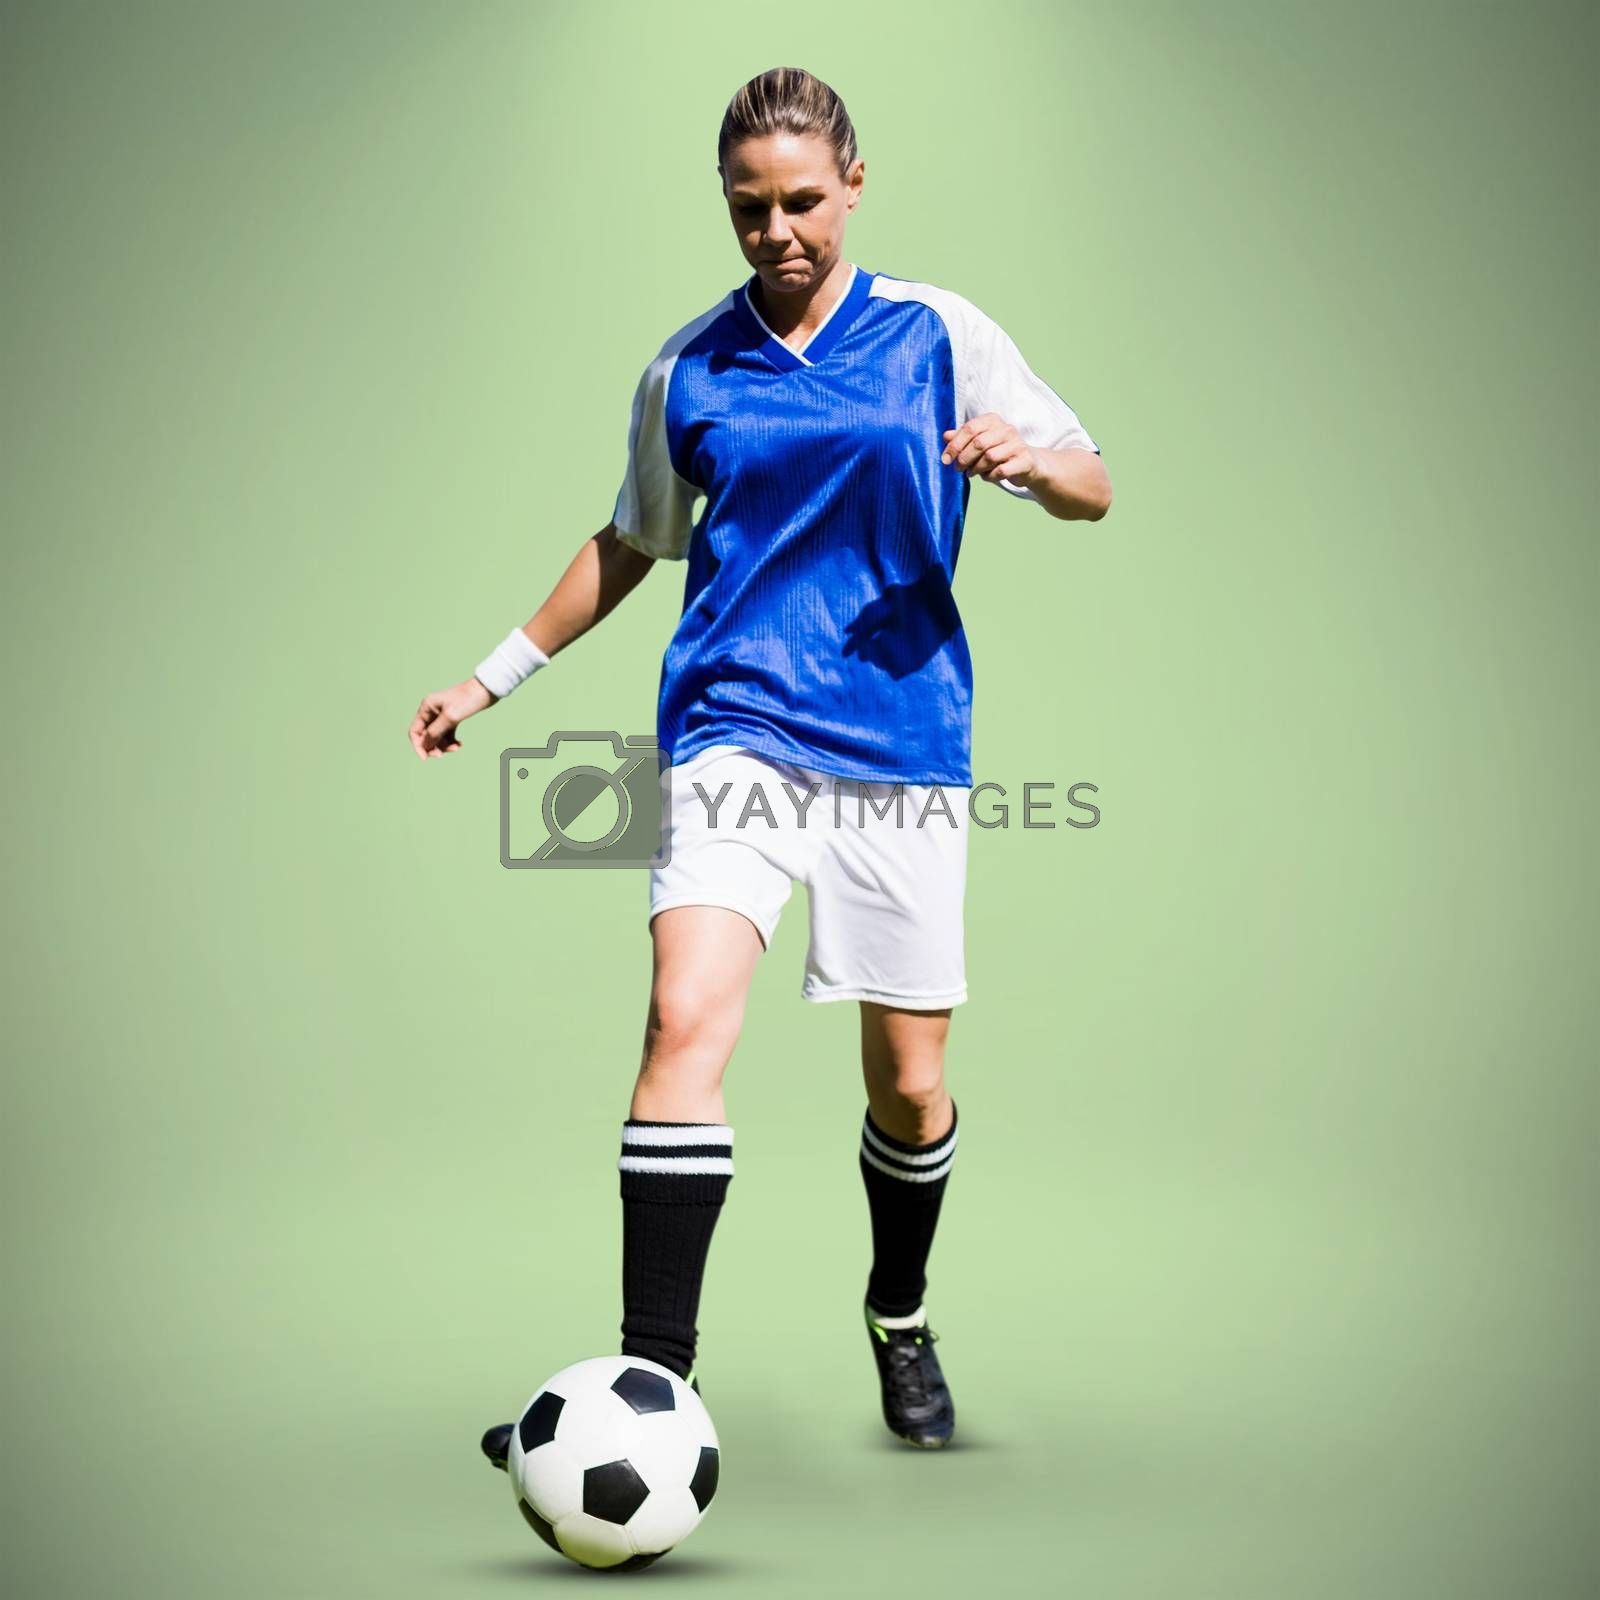 Woman soccer player progressing with a ball against green background